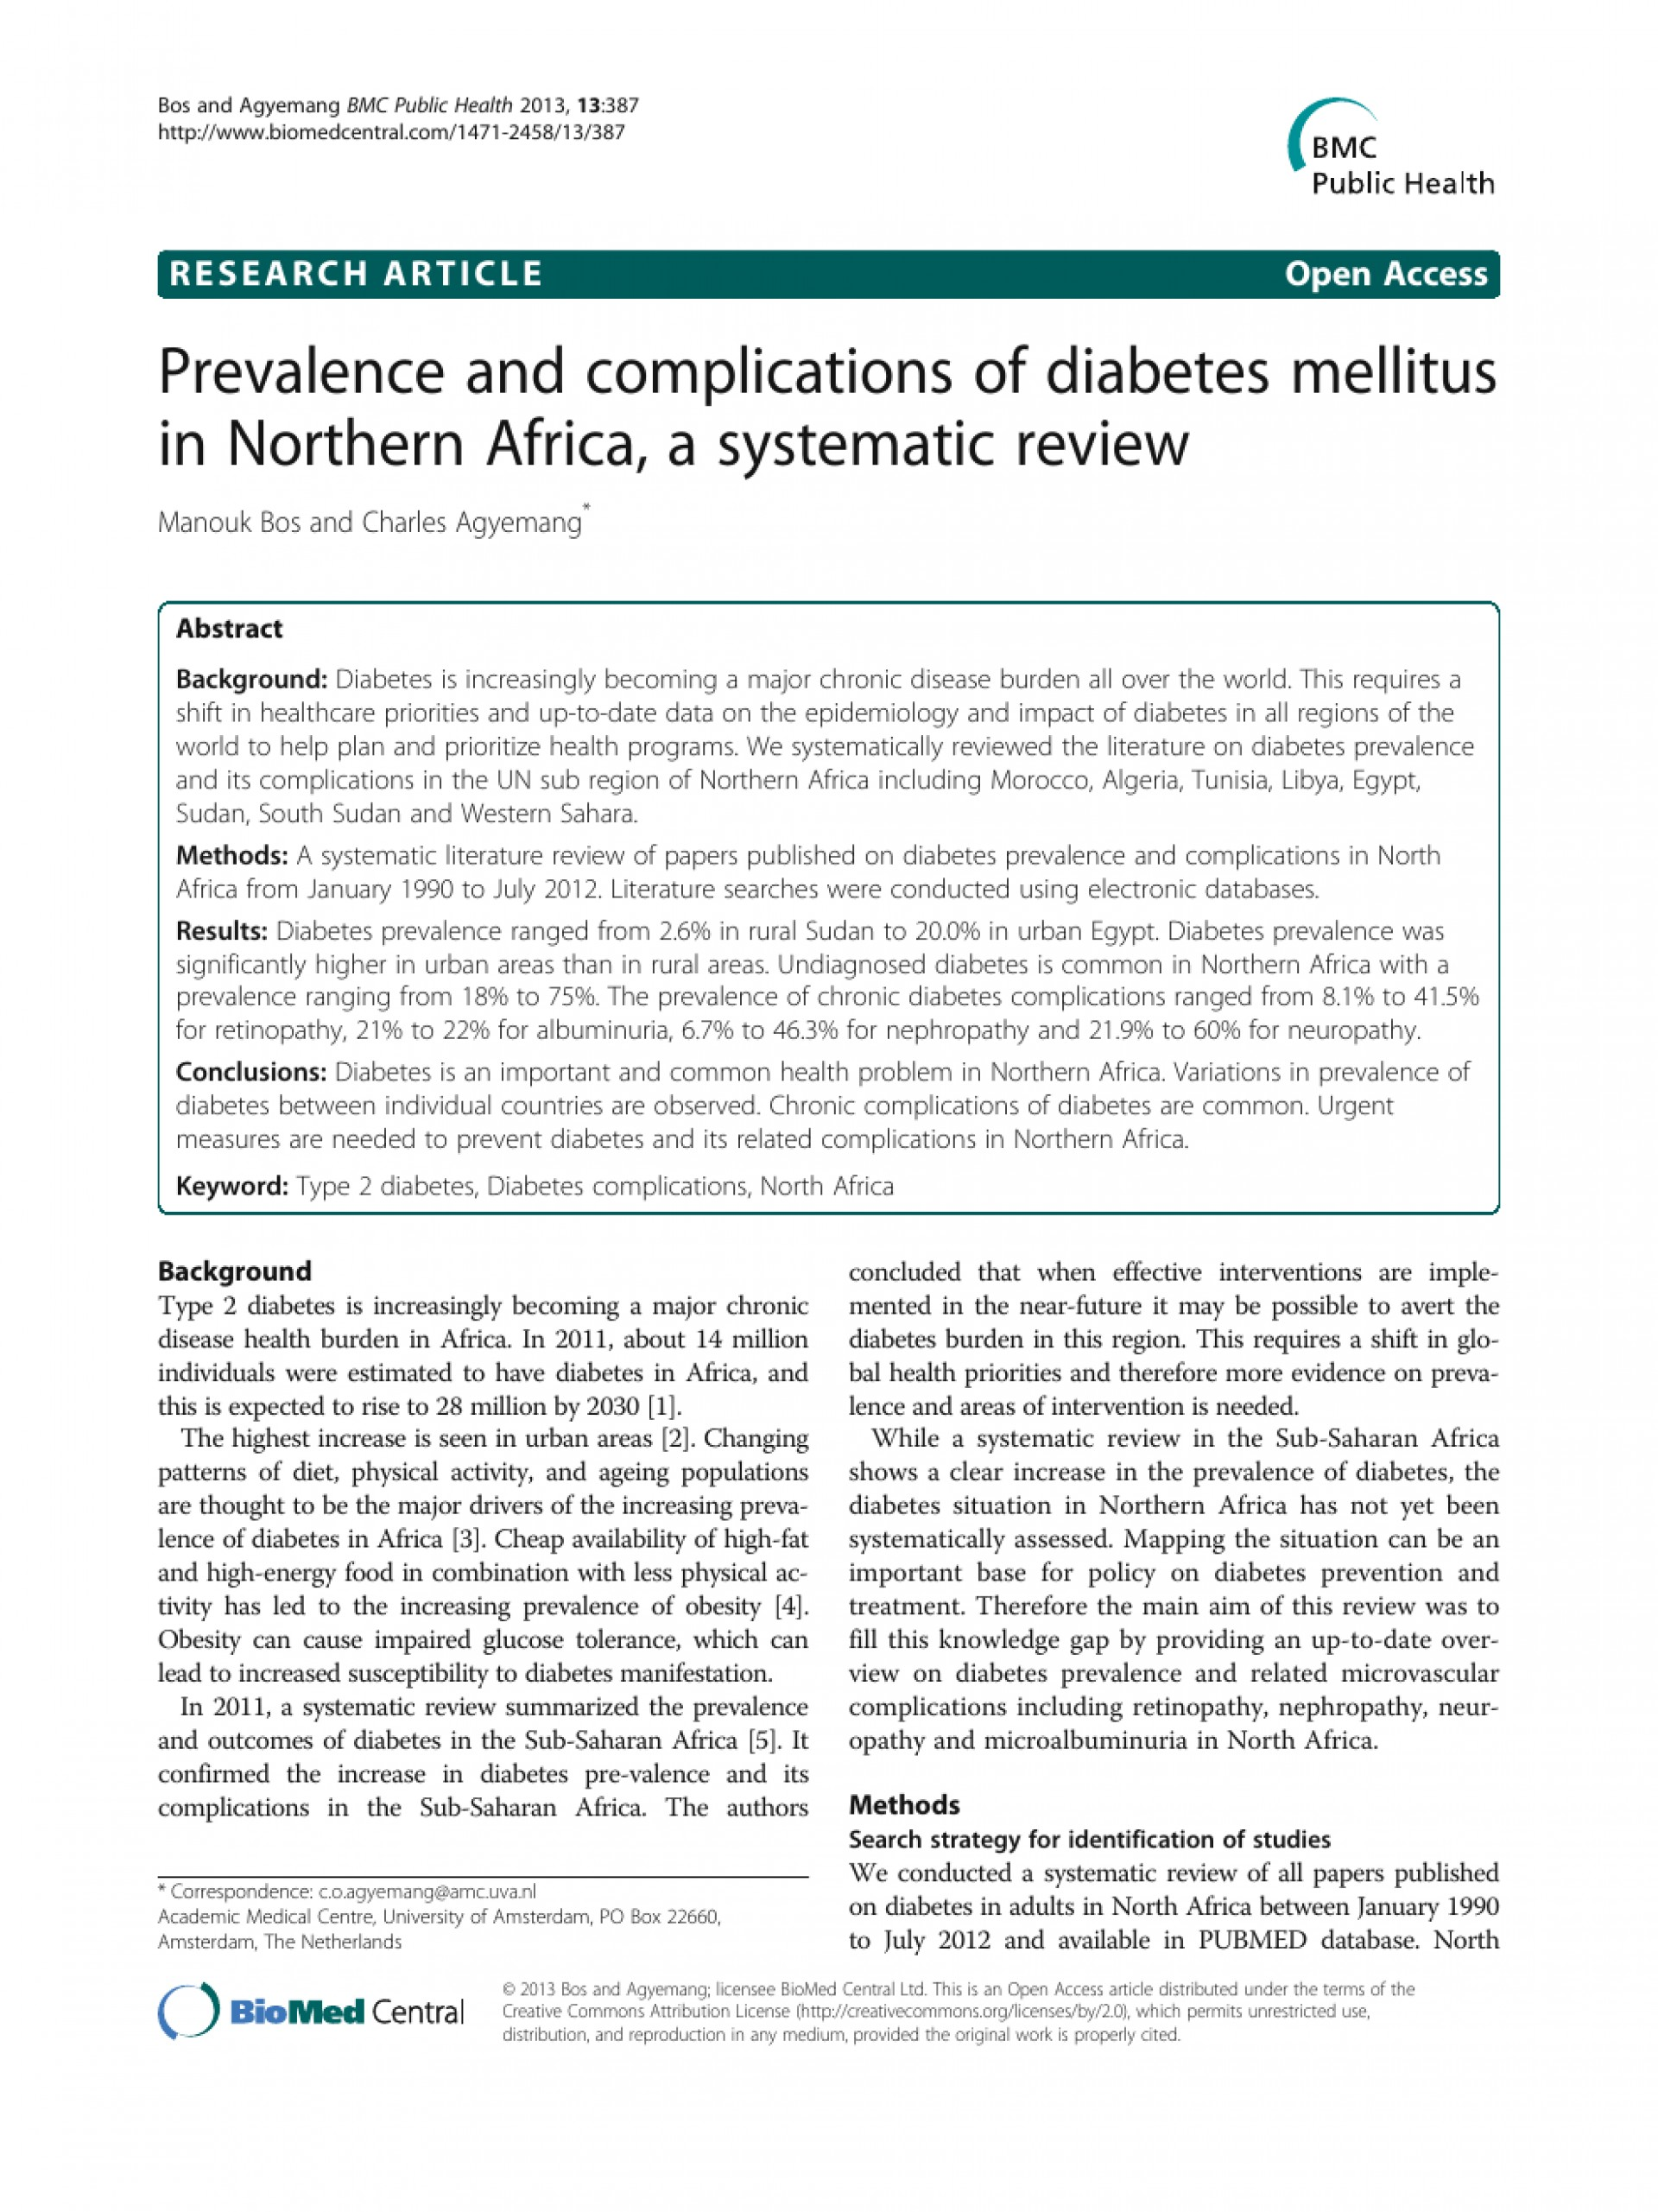 002 Diabetes Research Papers Pdf Paper Top Mellitus 1920